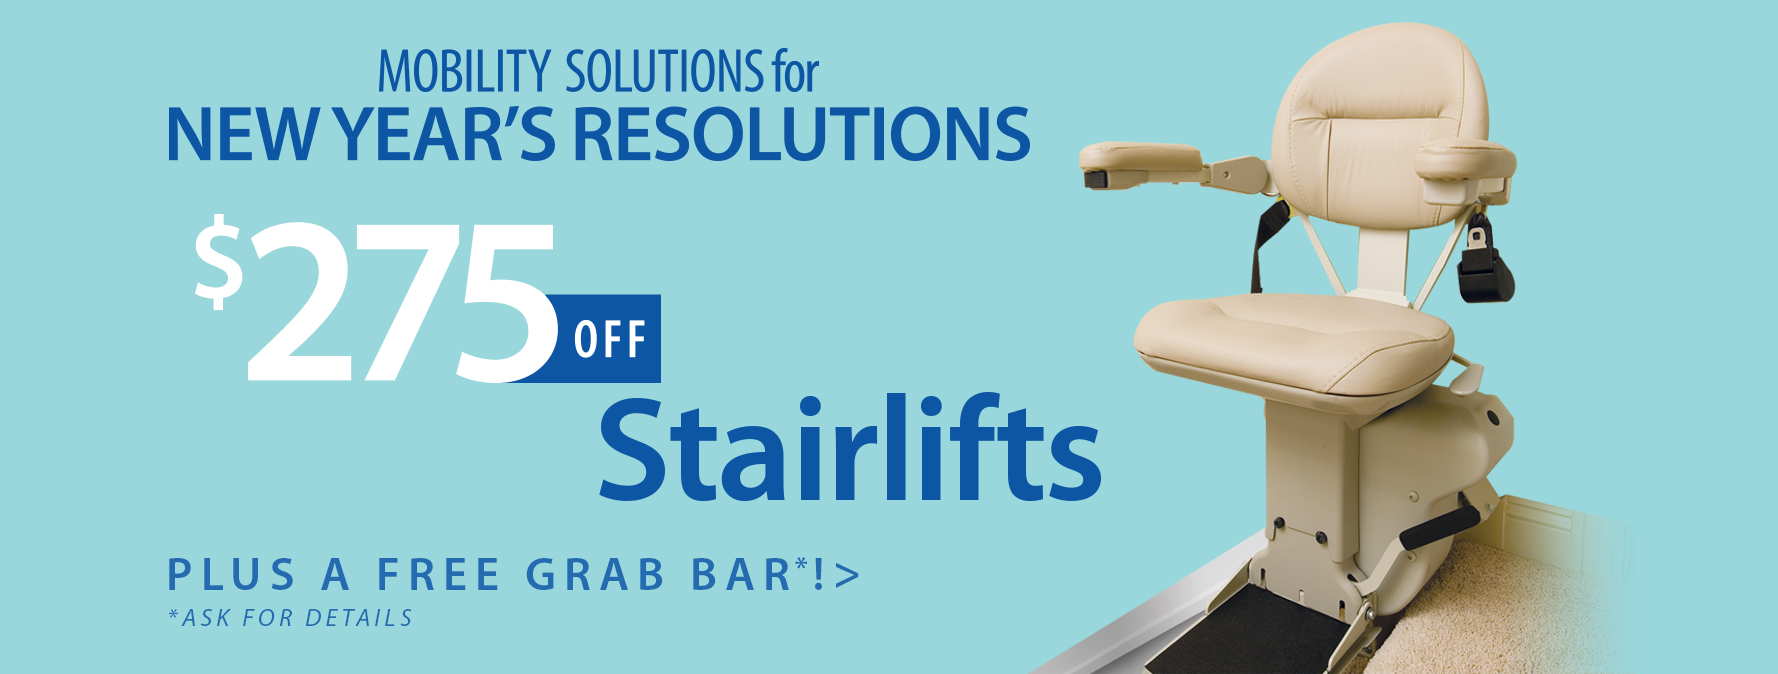 $275 off Stairlifts - Plus a FREE grab bar!